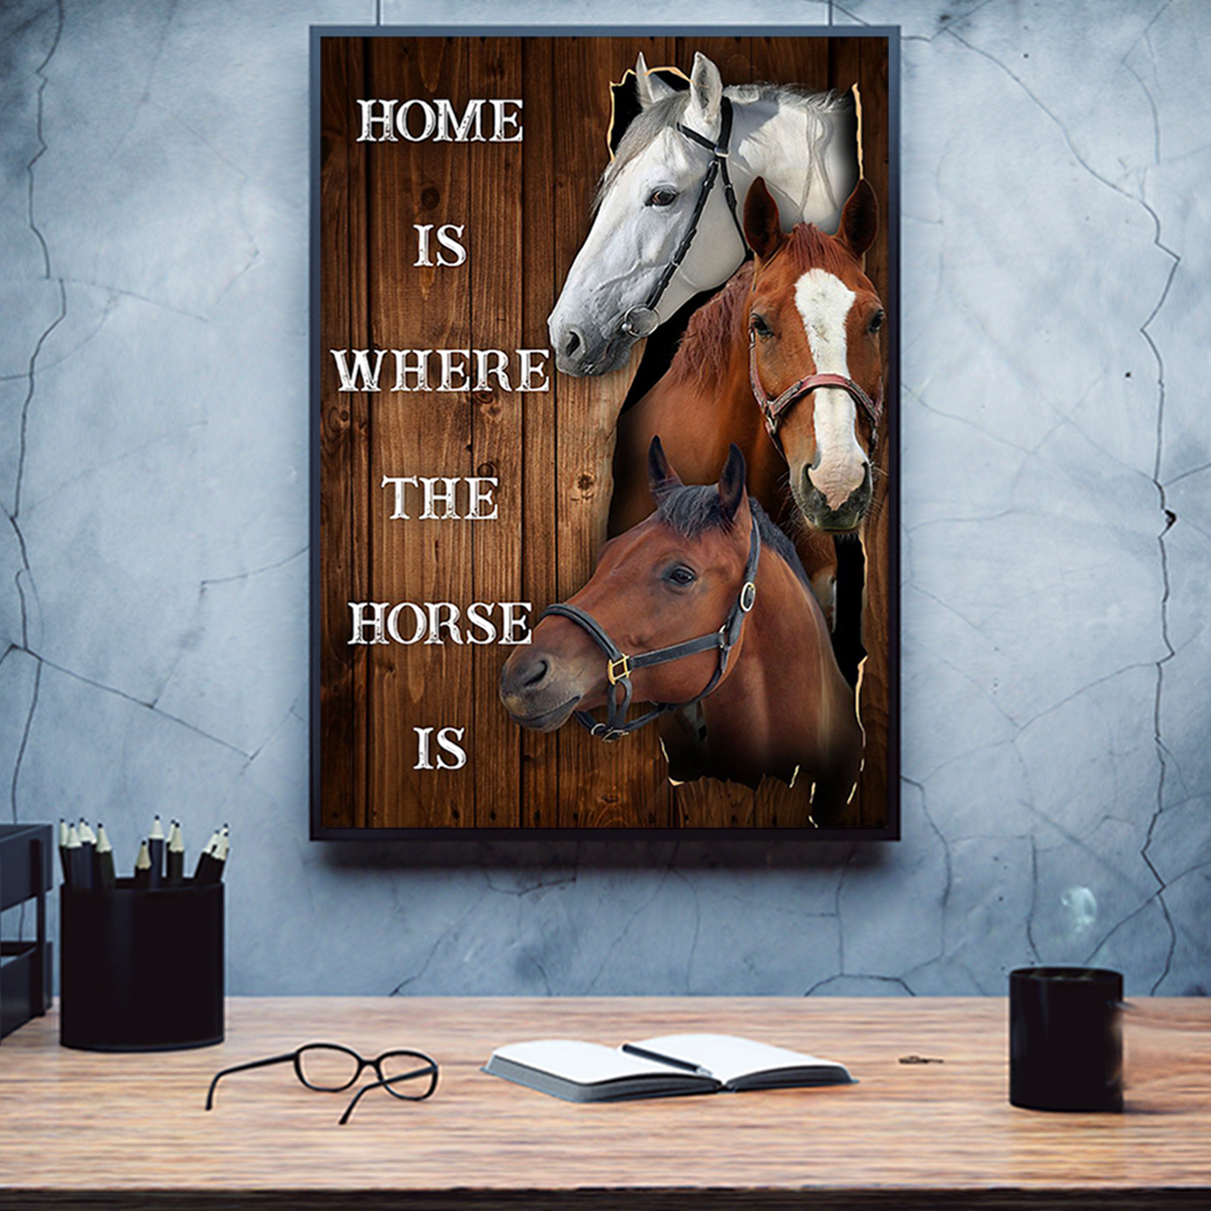 Home is where the horse is poster A1